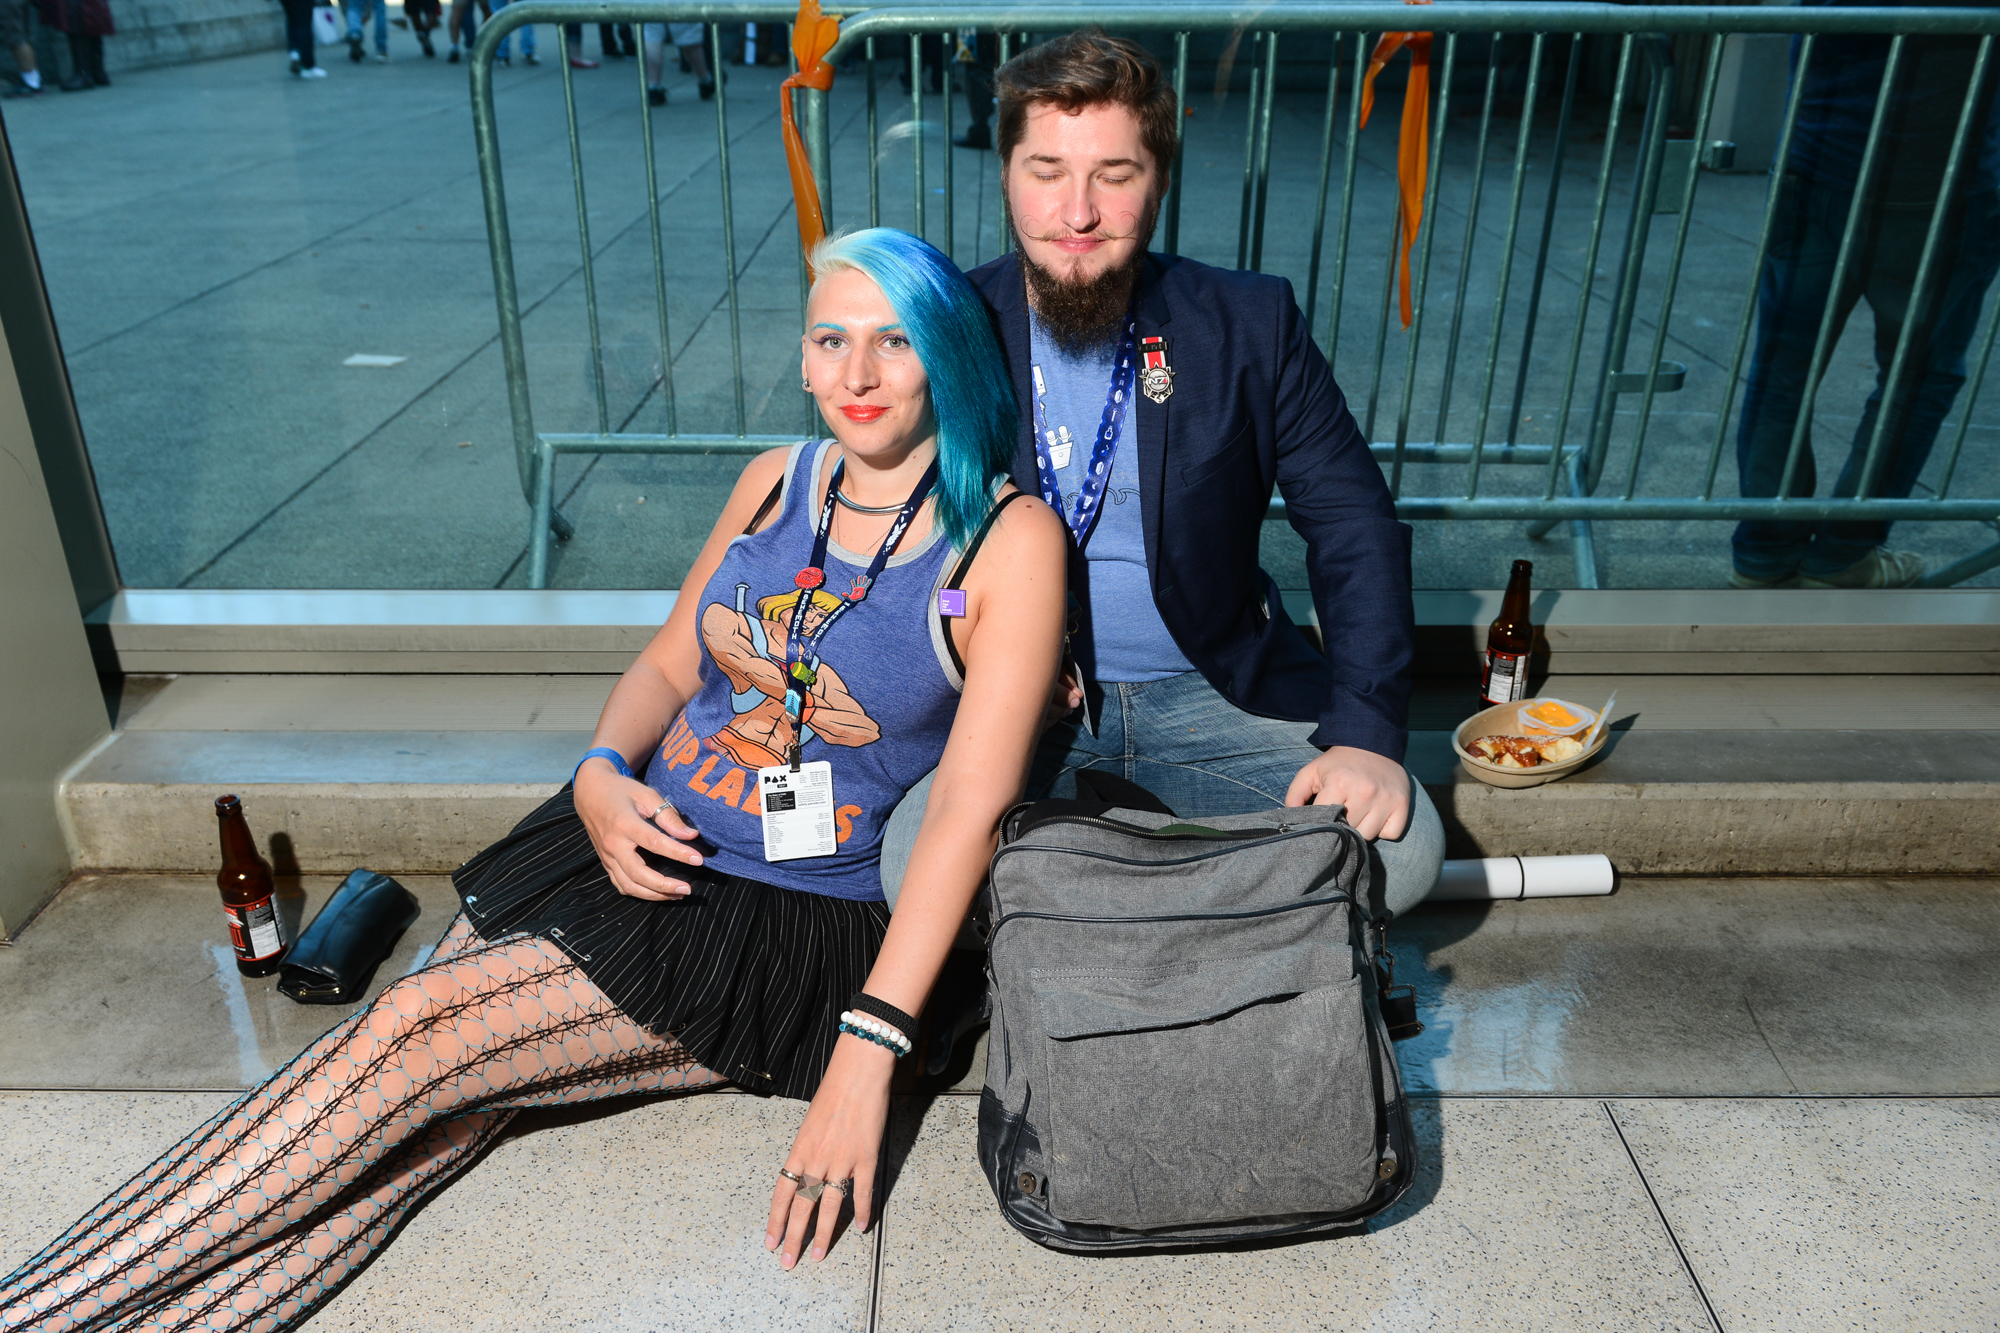 Seattle's Penny Arcade Expo (PAX) brings tens of thousands of people to the Washington State Convention Center ever single year. PAX  includes concerts, arcade games, video game tournaments, cosplay and more - and runs the entire Labor Day weekend from September 1-4, 2017. (Image: Chona Kasinger / Seattle Refined)